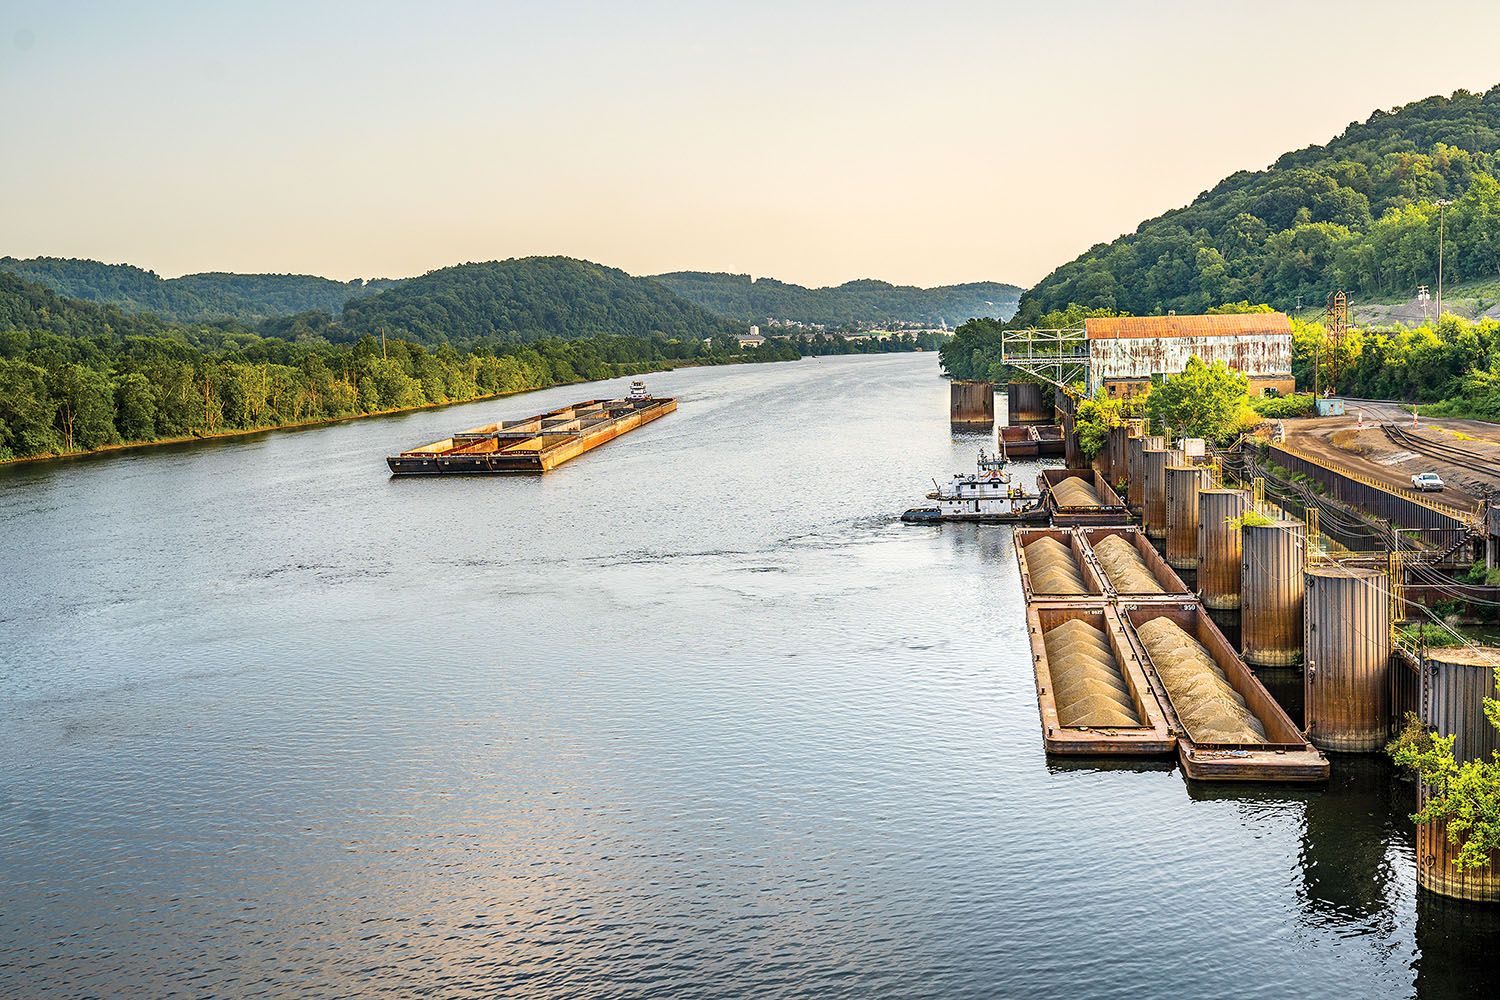 Mooring cells at Ohio River Mile 62 are back open, and barges are being fleeted as part of an agreement the Frontier Group of Companies signed with Industry Terminal & Salvage (IT&S) the last week of July. IT&S will serve as port operator and stevedore for the Weirton Frontier Crossings site, the former home of Weirton Steel and Arcelor-Mittal USA in Weirton, W.Va. (photo courtesy of Frontier Group of Companies)